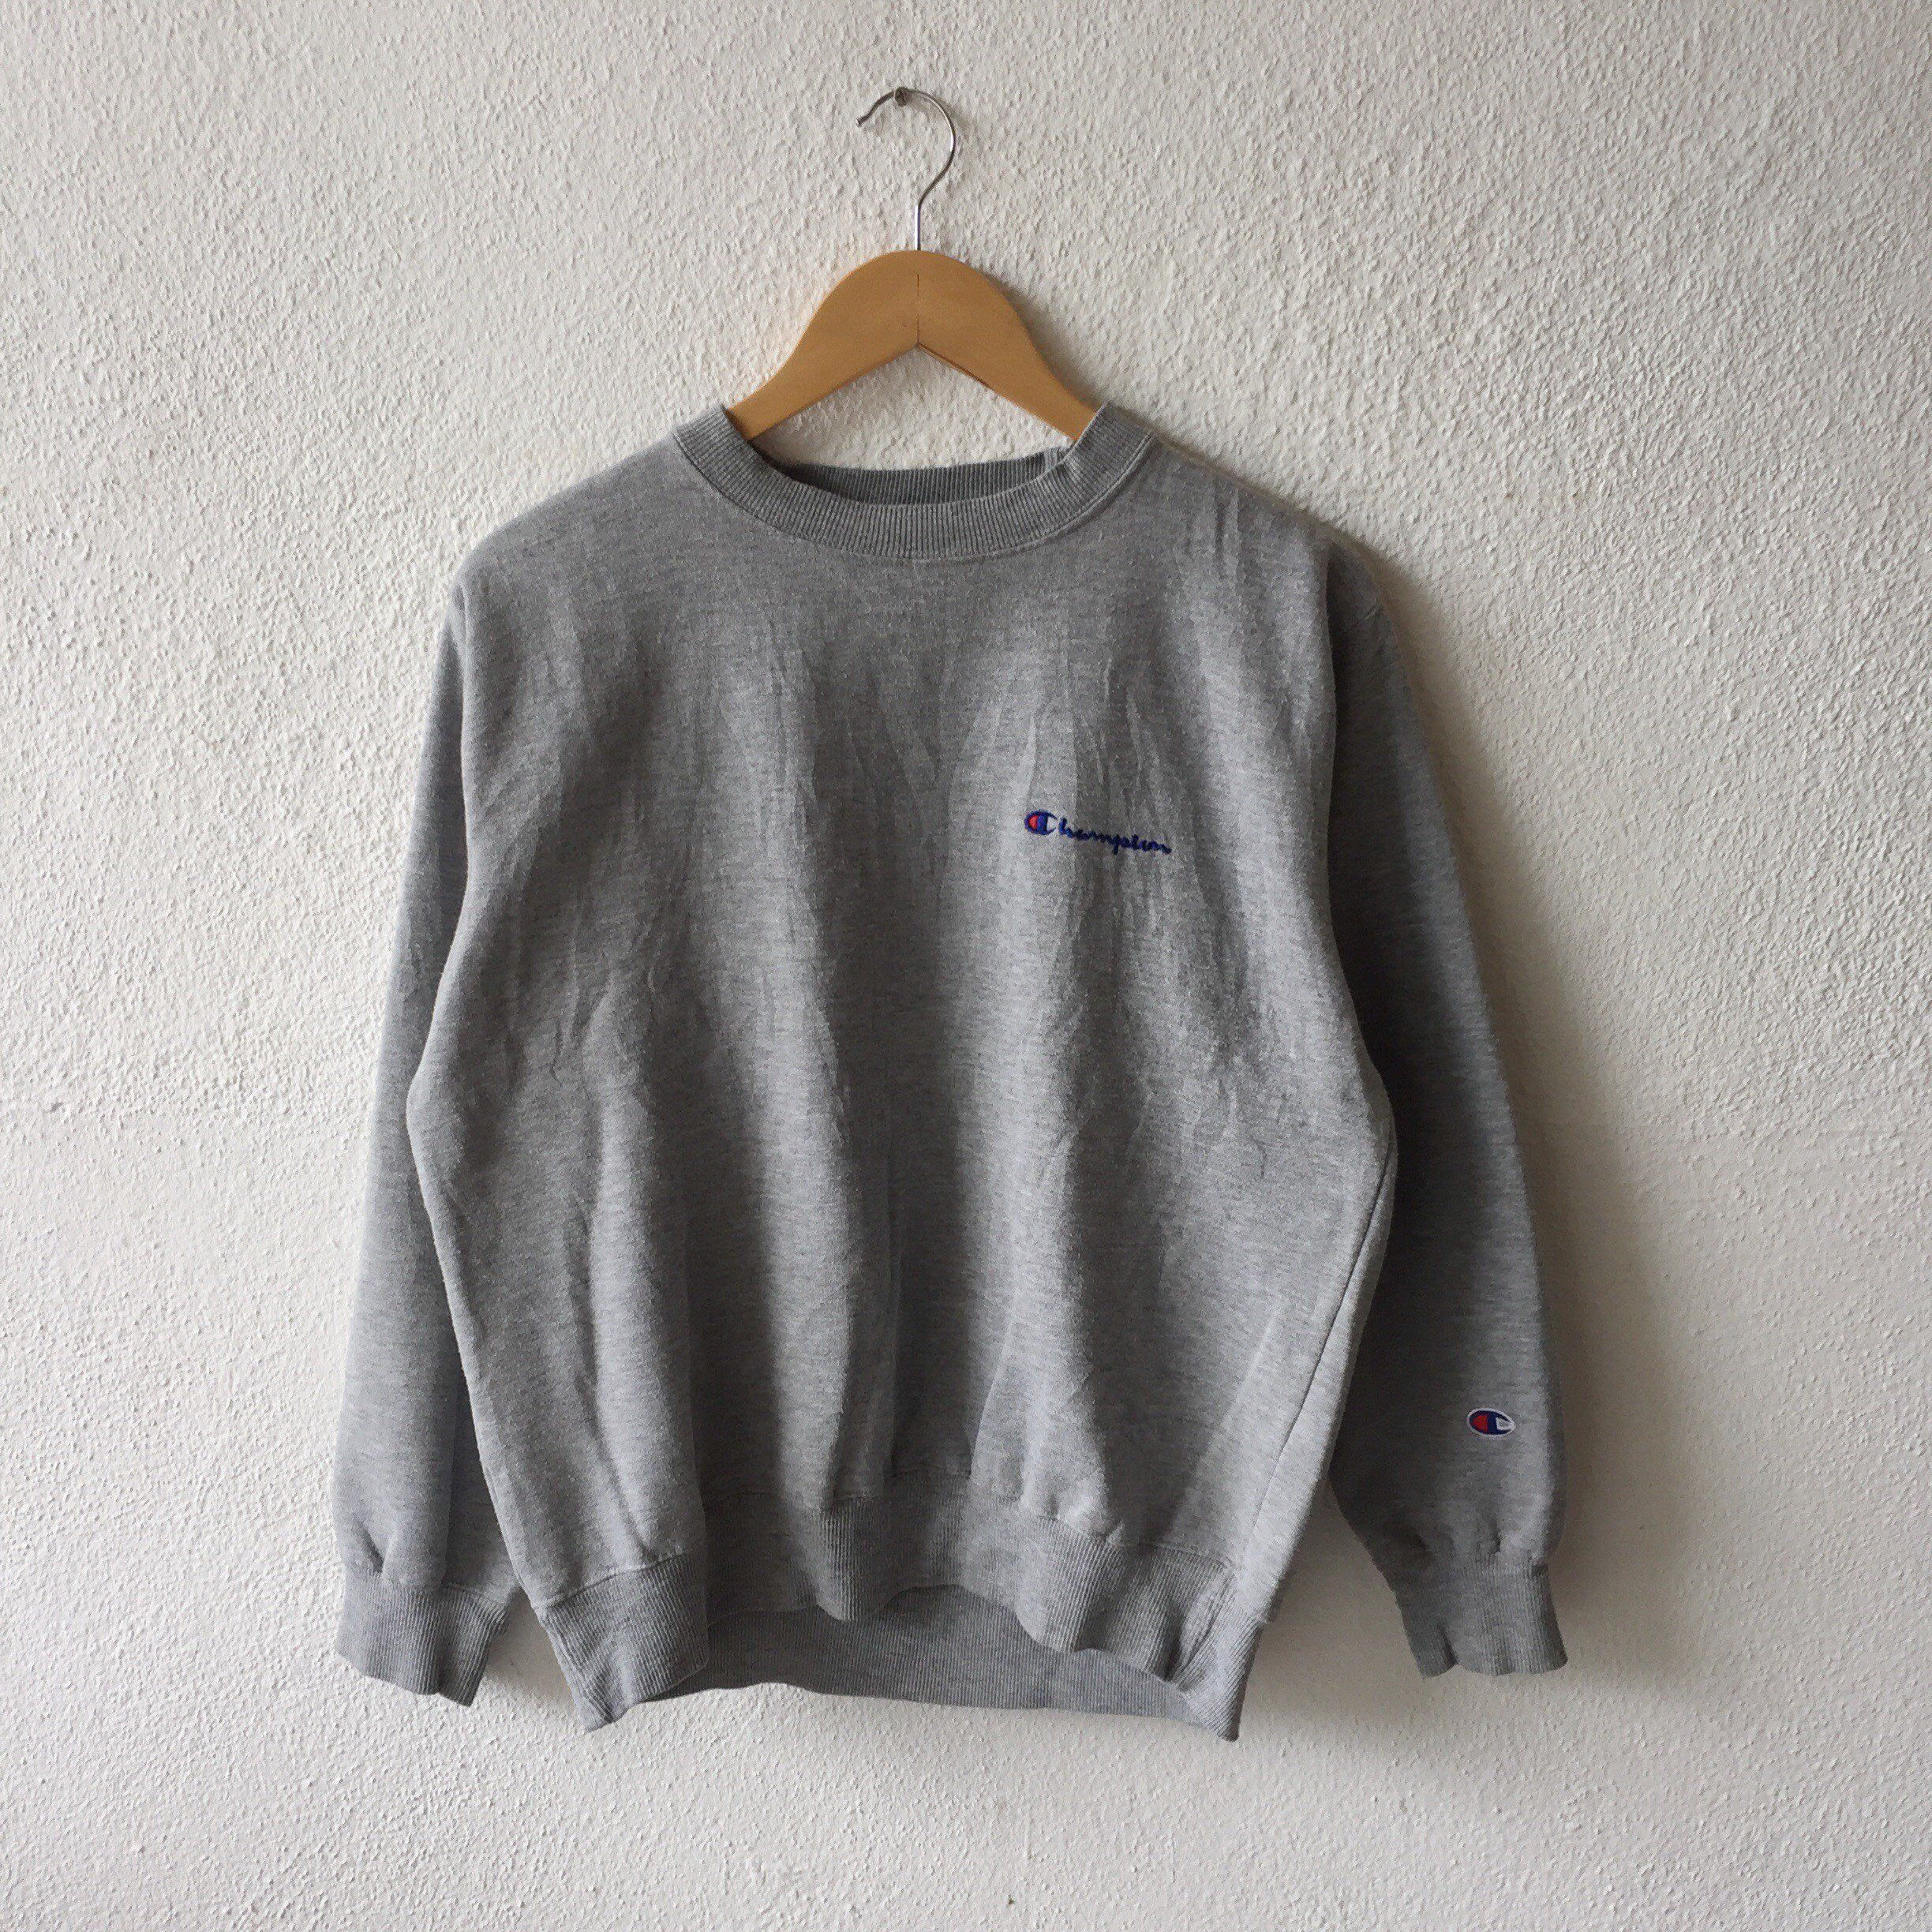 Excited To Share This Item From My Etsy Shop Vintage 90s Champion Small Spellout Embro Vintage Crewneck Sweatshirt Champion Clothing Grey Champion Sweatshirt [ 2448 x 2448 Pixel ]